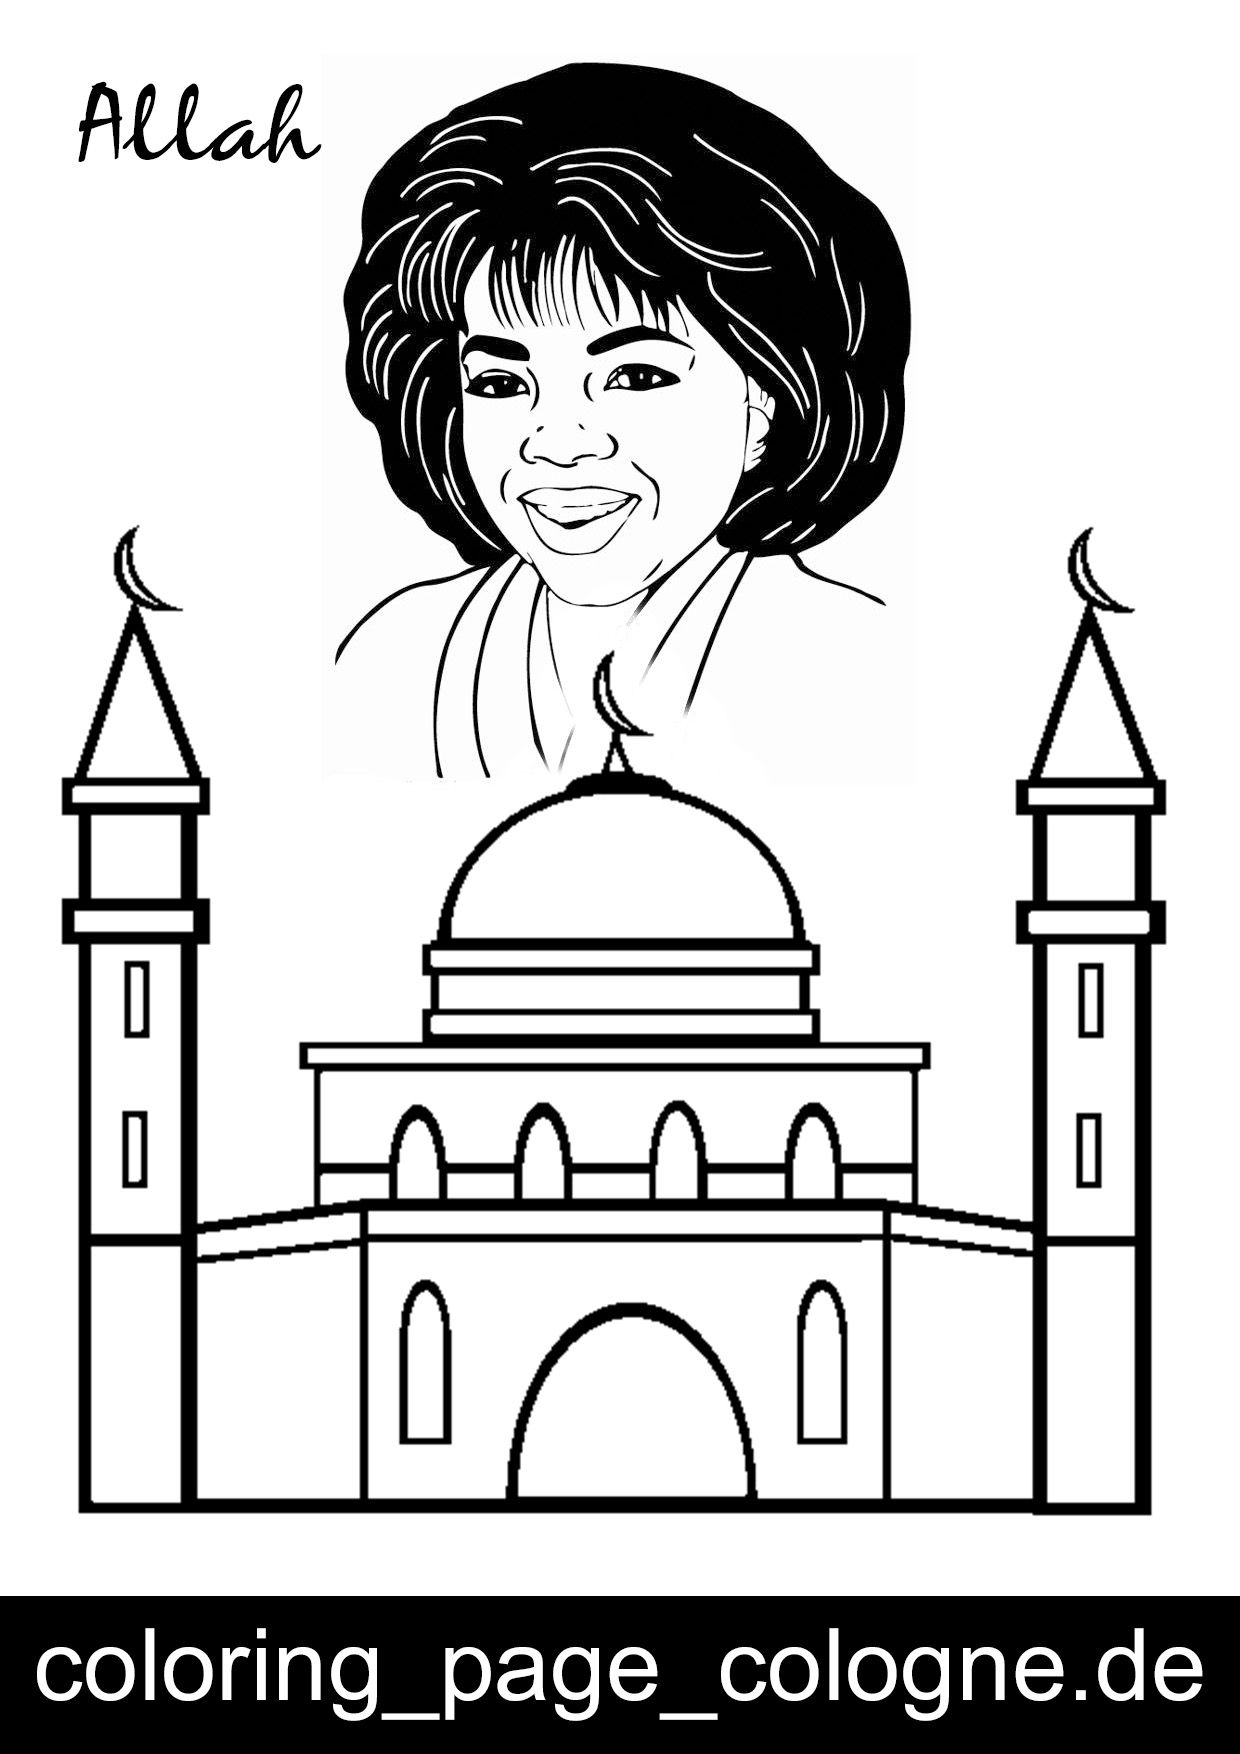 Coloring pages ramadan - Free Ramadan Coloring Pages Color In This Picture Of A Mosque And Others With Our Library Of Online Coloring Pages Save Them Send Them They Re Great For